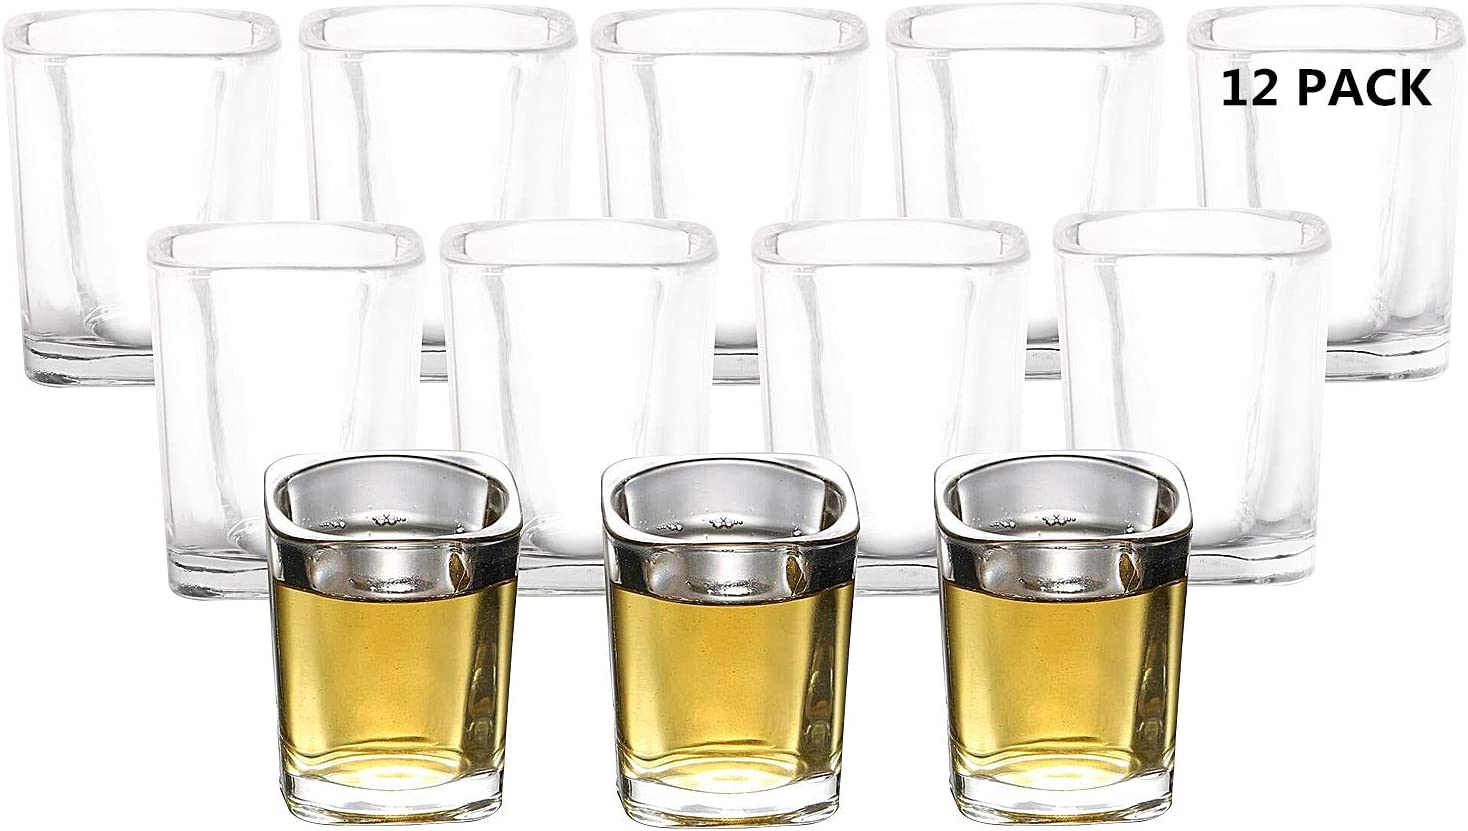 RUCKAE 12-Pack Heavy Base Shot Don't miss the campaign OFFicial Glasse Glasses Clear 2-Ounce